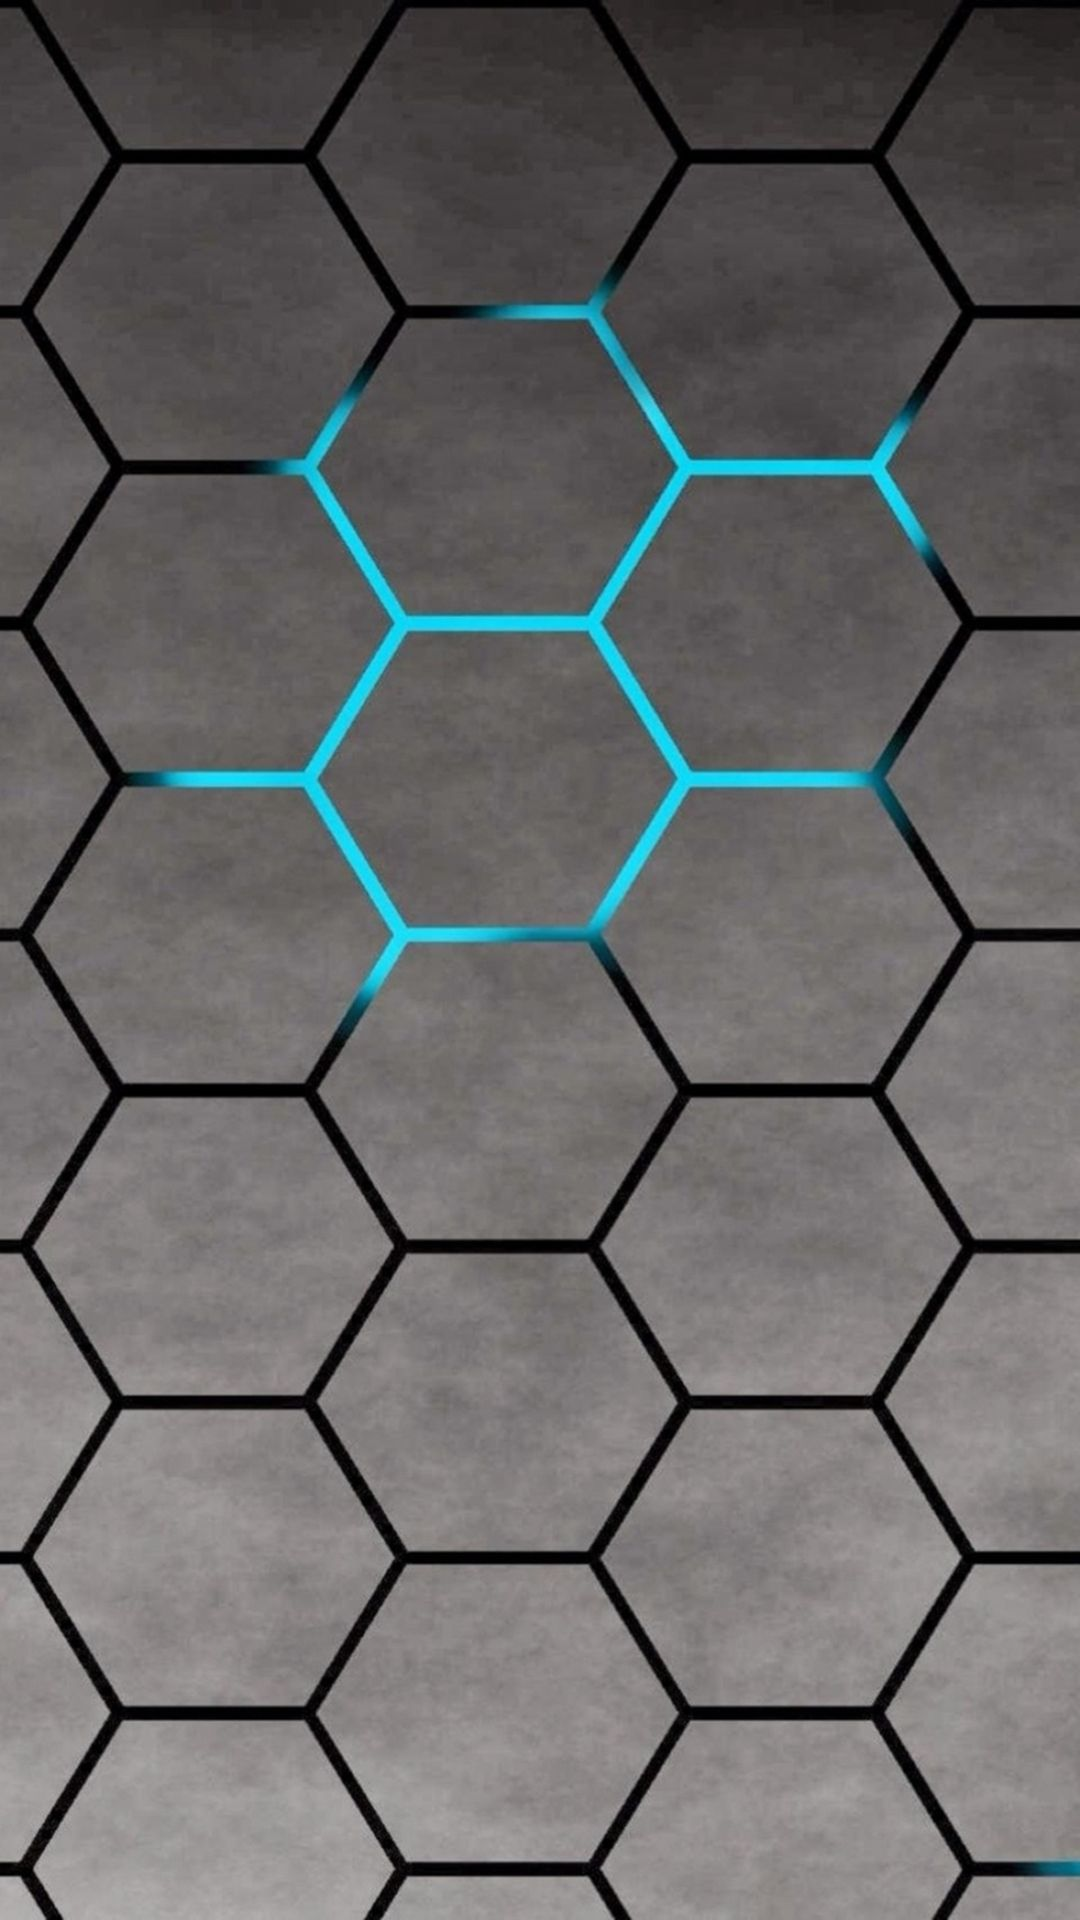 3d Blue Shiny Light Honey Comb Pattern Abstract Background Iphone 6 Wallpaper Download Iphone Wall Honeycomb Wallpaper Abstract Backgrounds Honeycomb Pattern